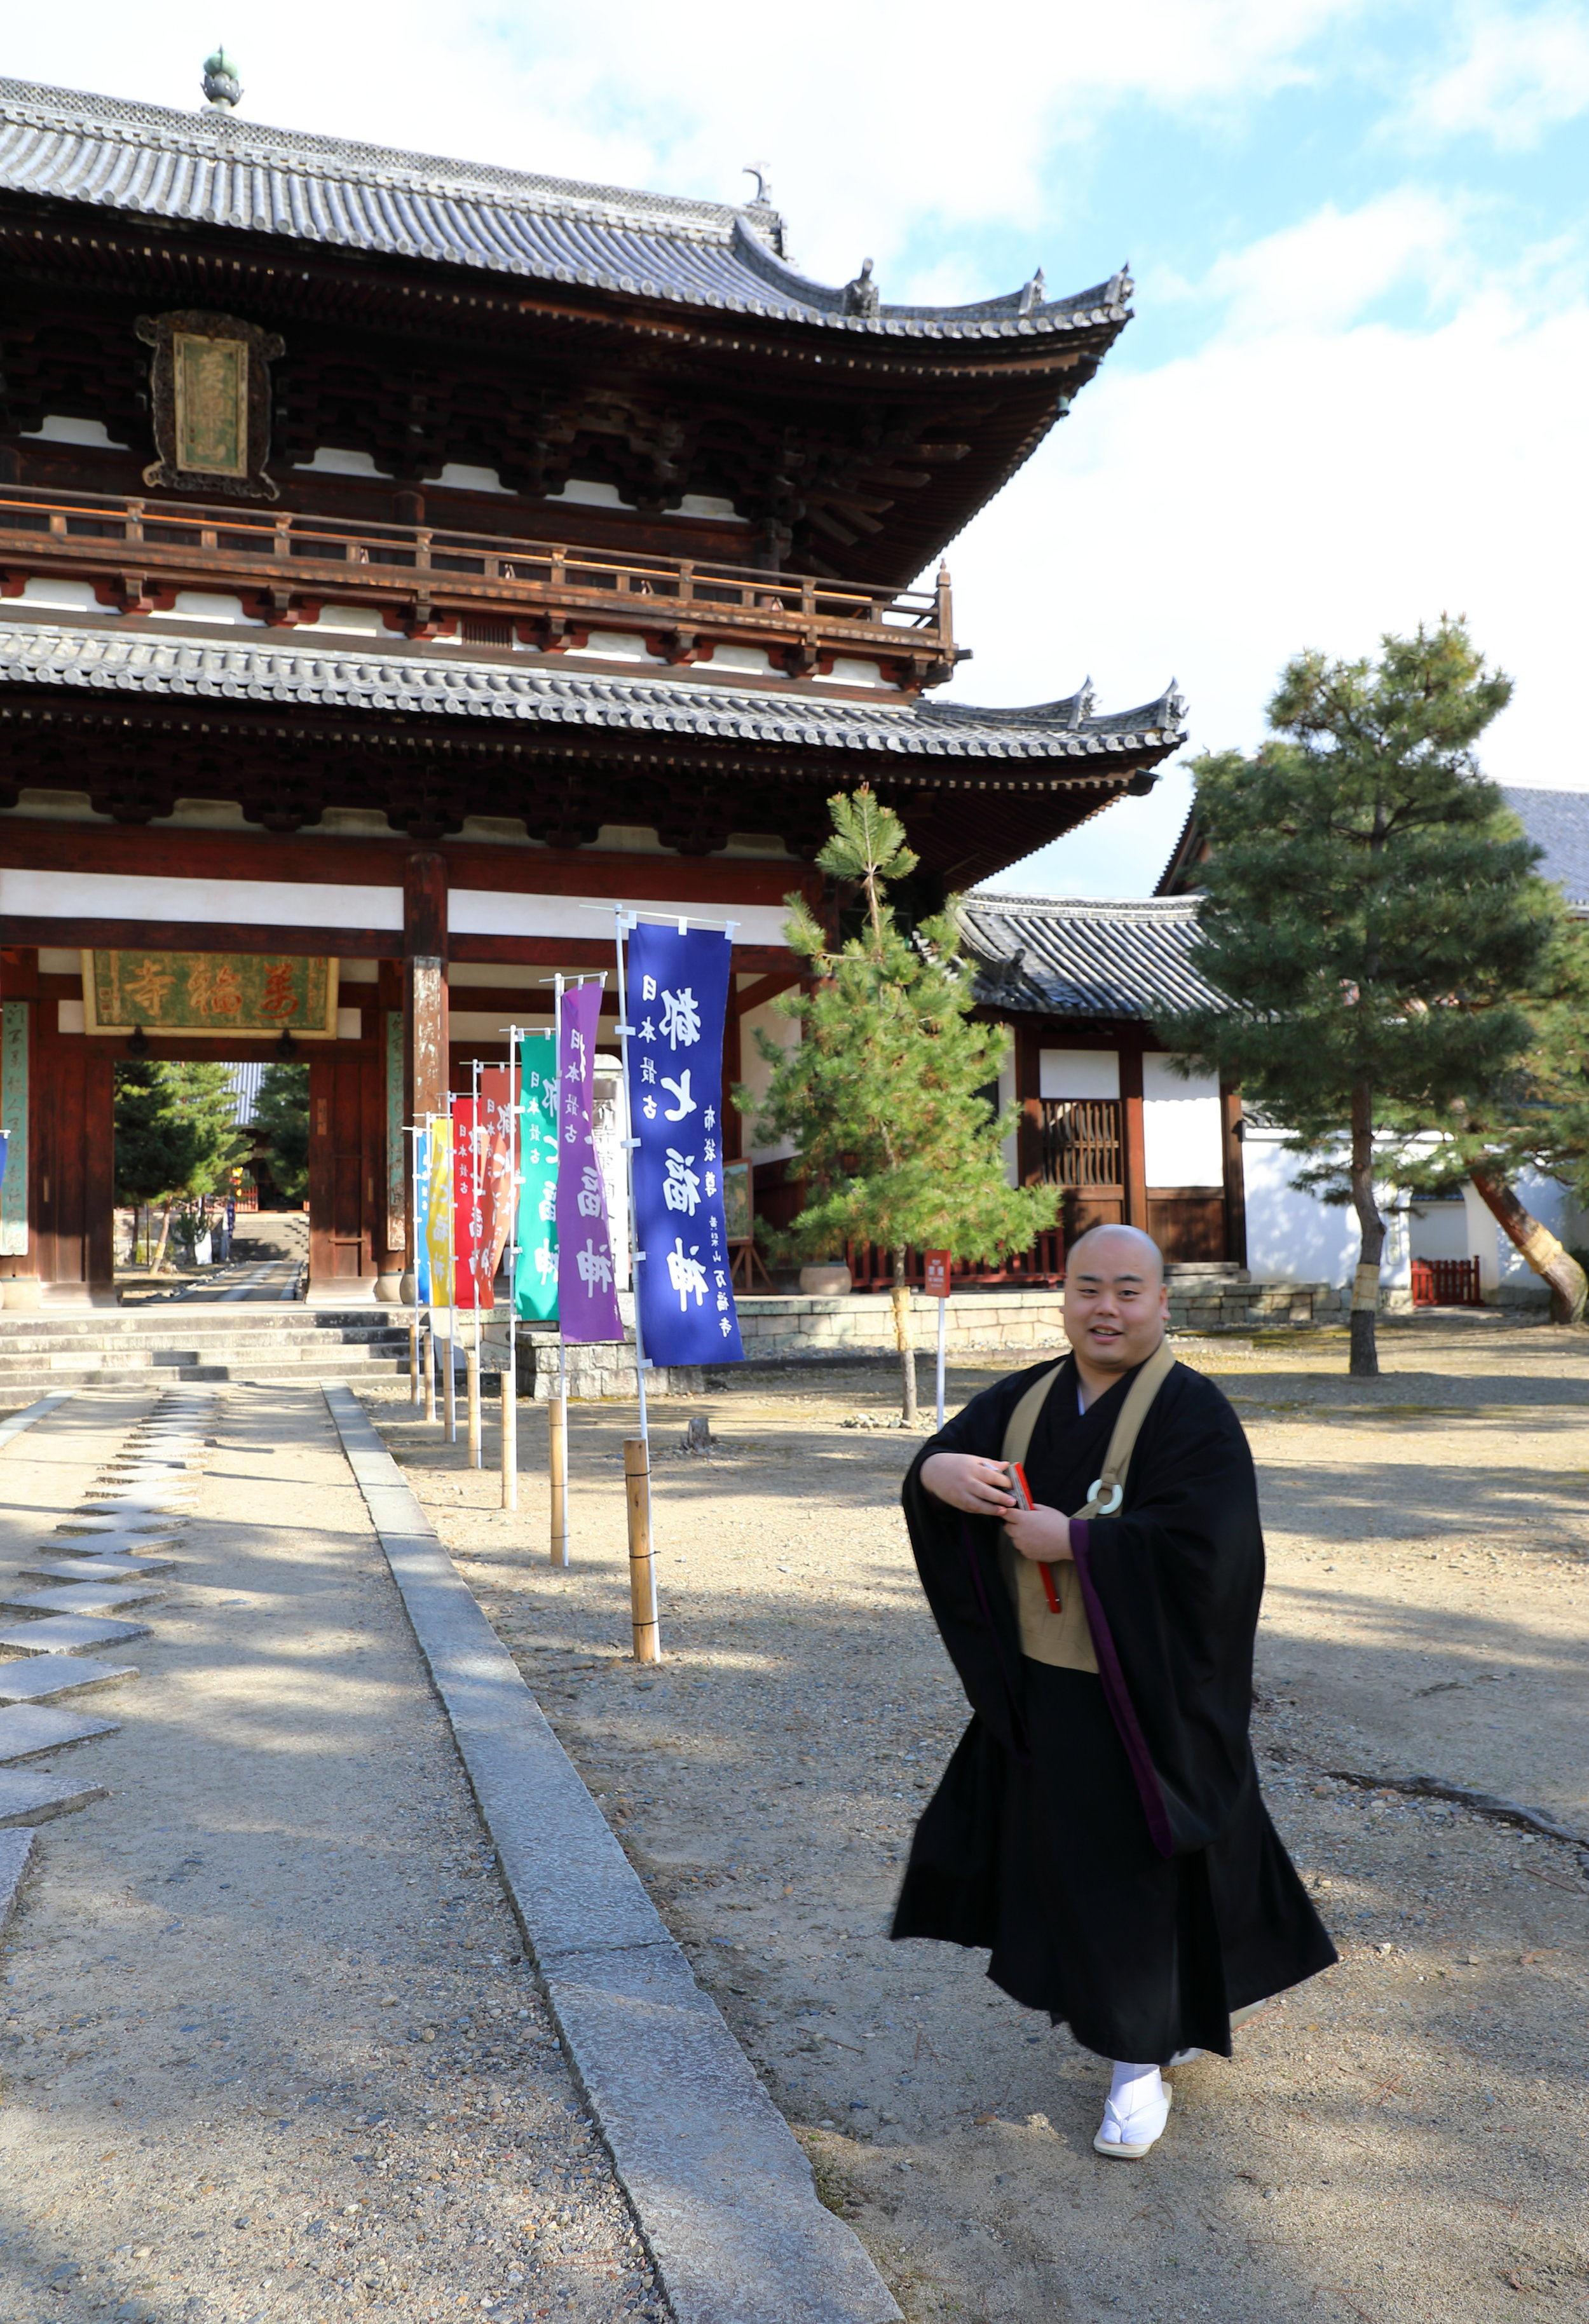 An Obaku Buddhist monk in front of the Sanmon Gate, the second and spiritually important gateway into the temple complex.